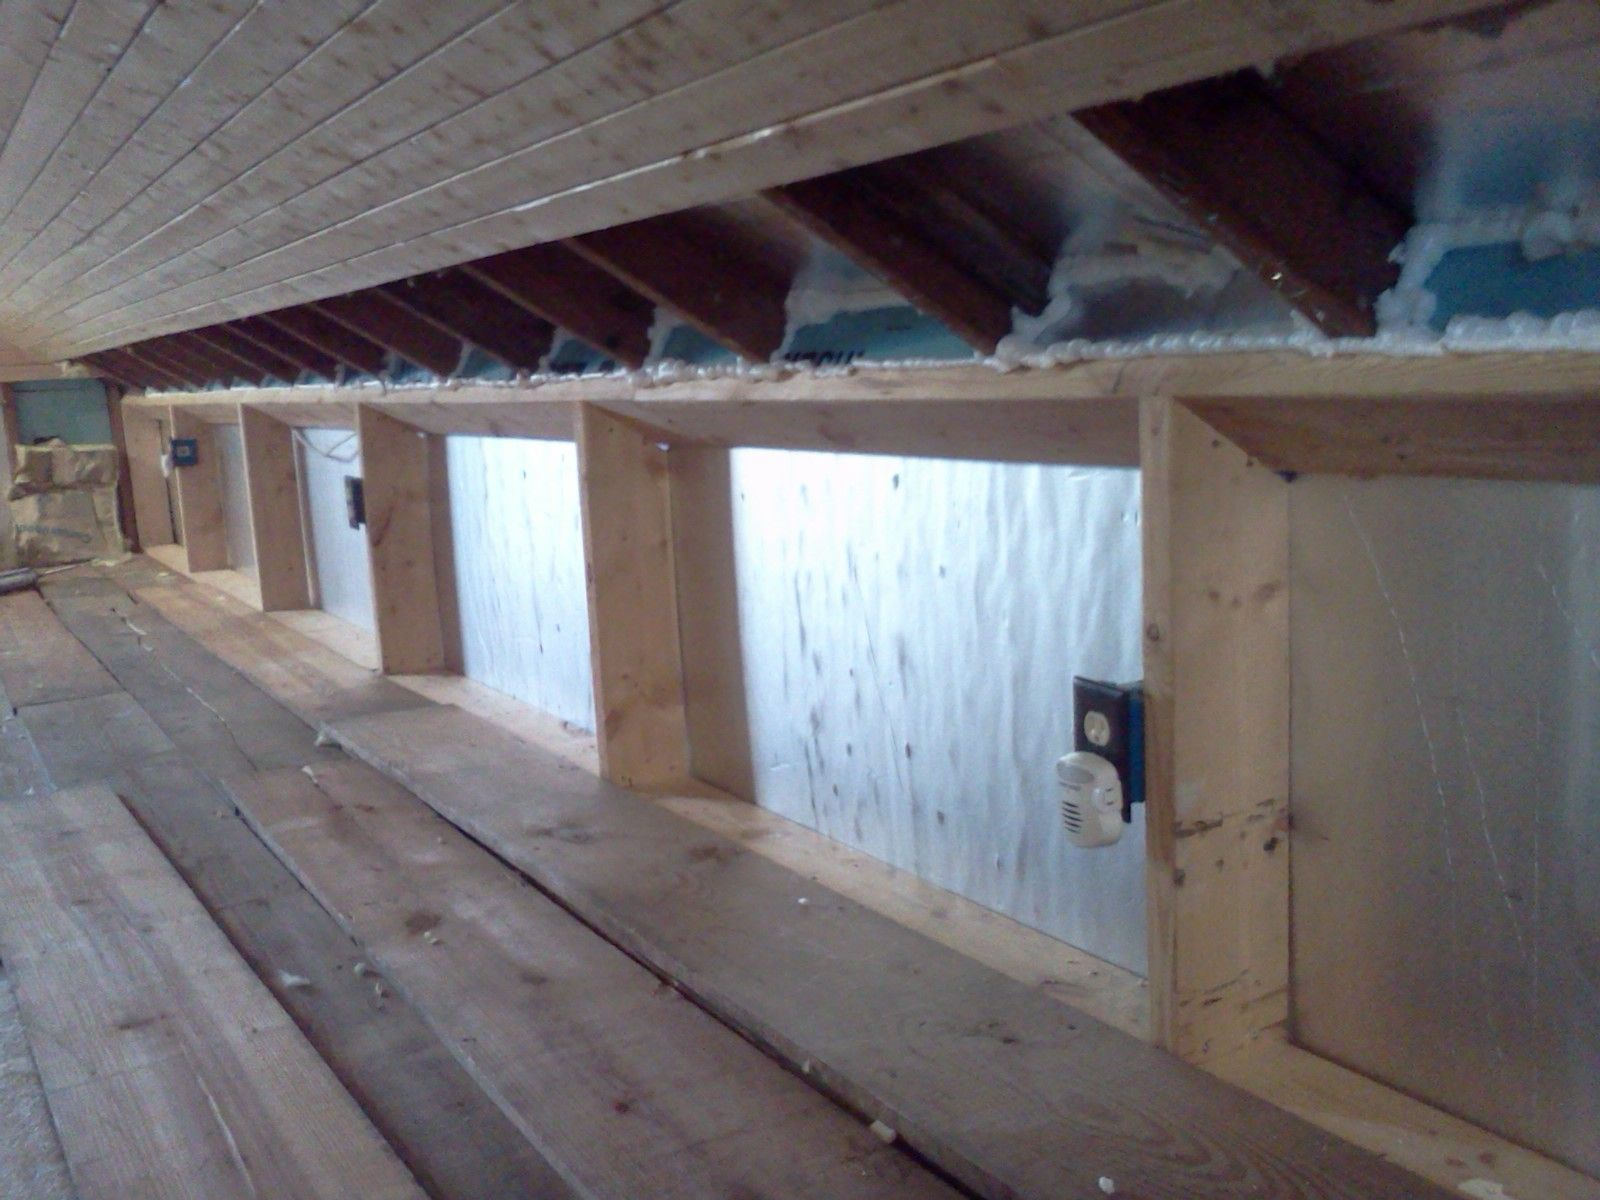 Kneewall crawlspace AFTER insulating and air sealing